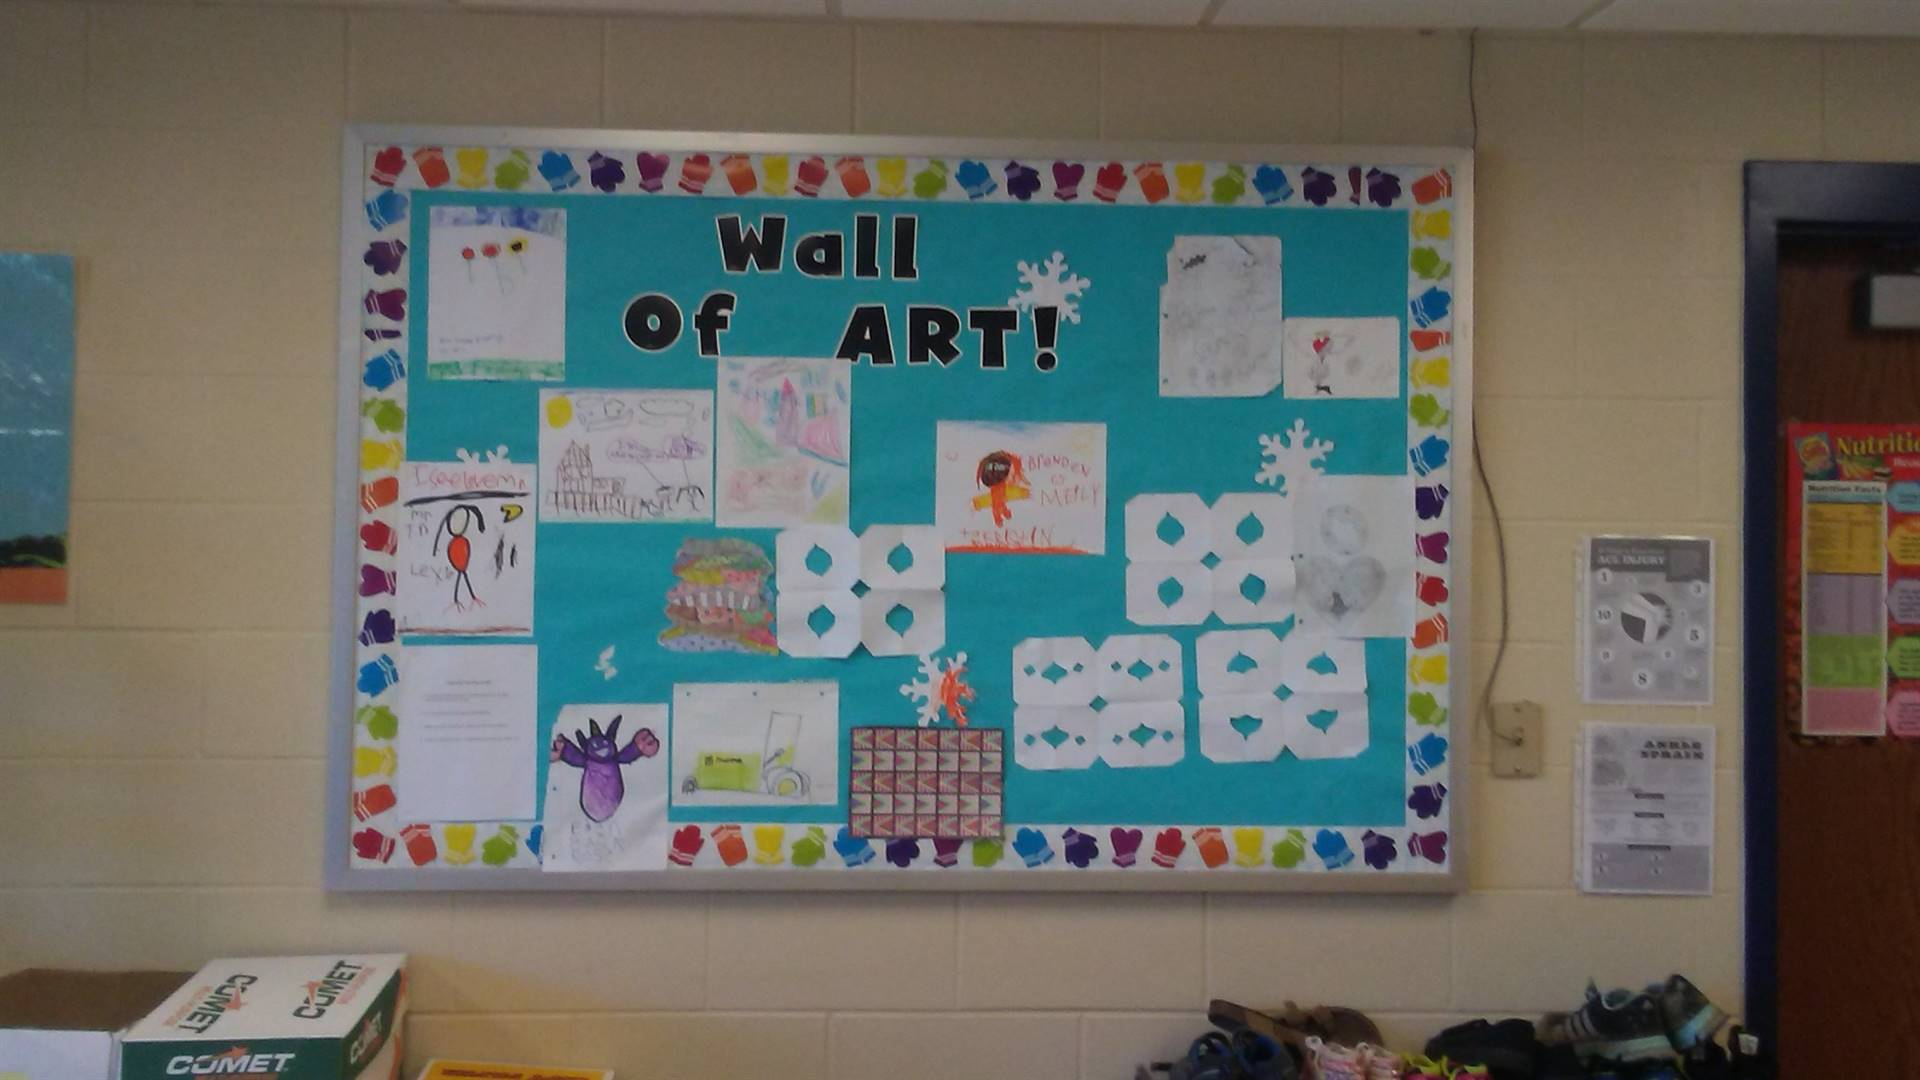 Wall of Art!